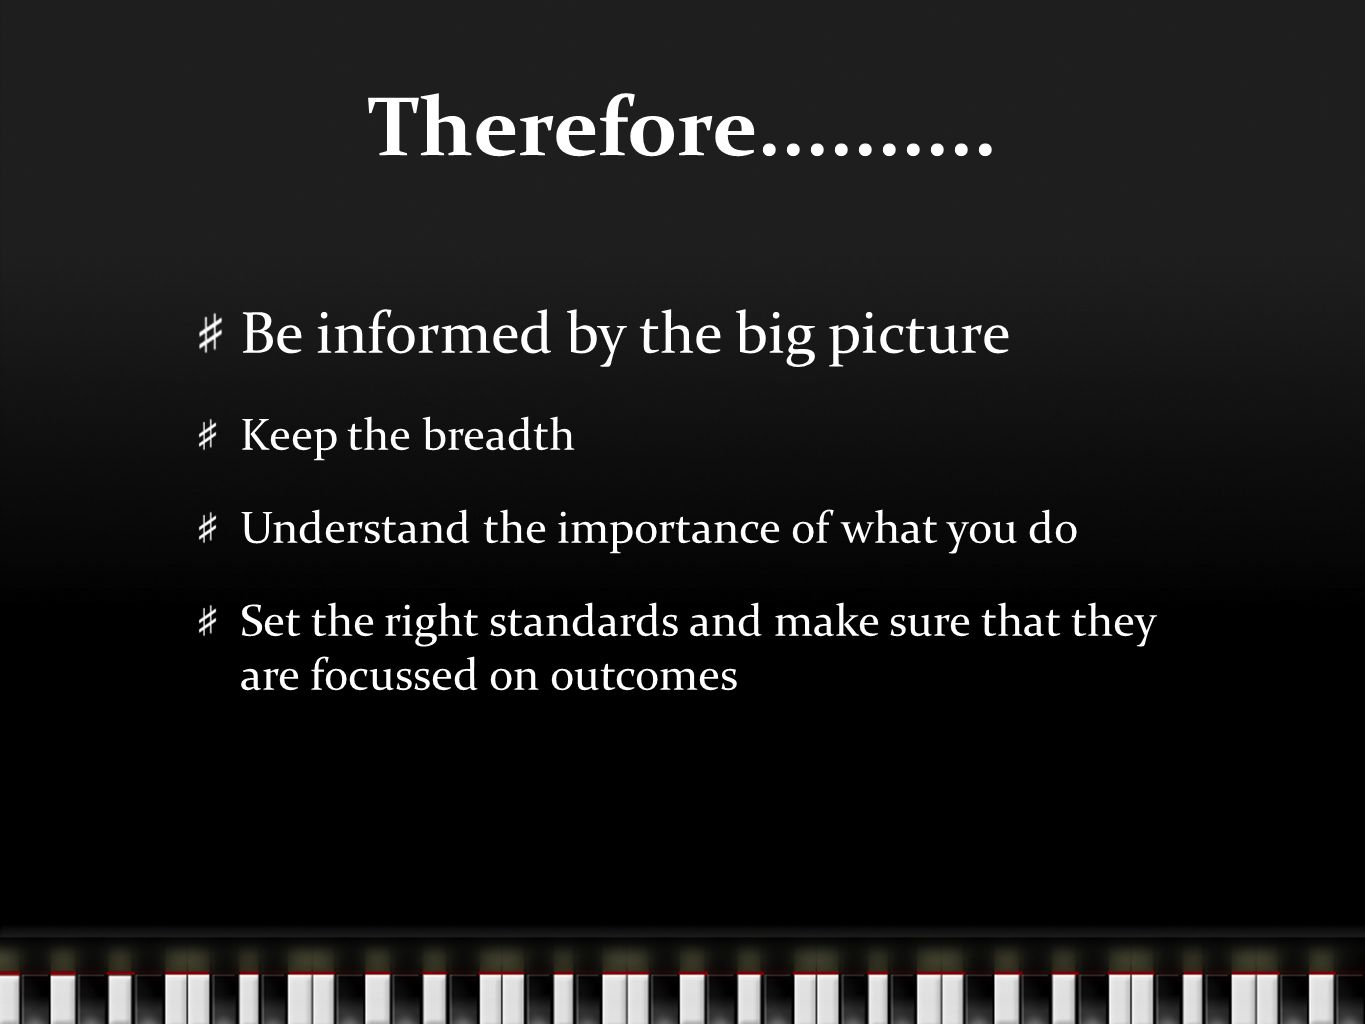 Therefore.......... Be informed by the big picture Keep the breadth Understand the importance of what you do Set the right standards and make sure tha